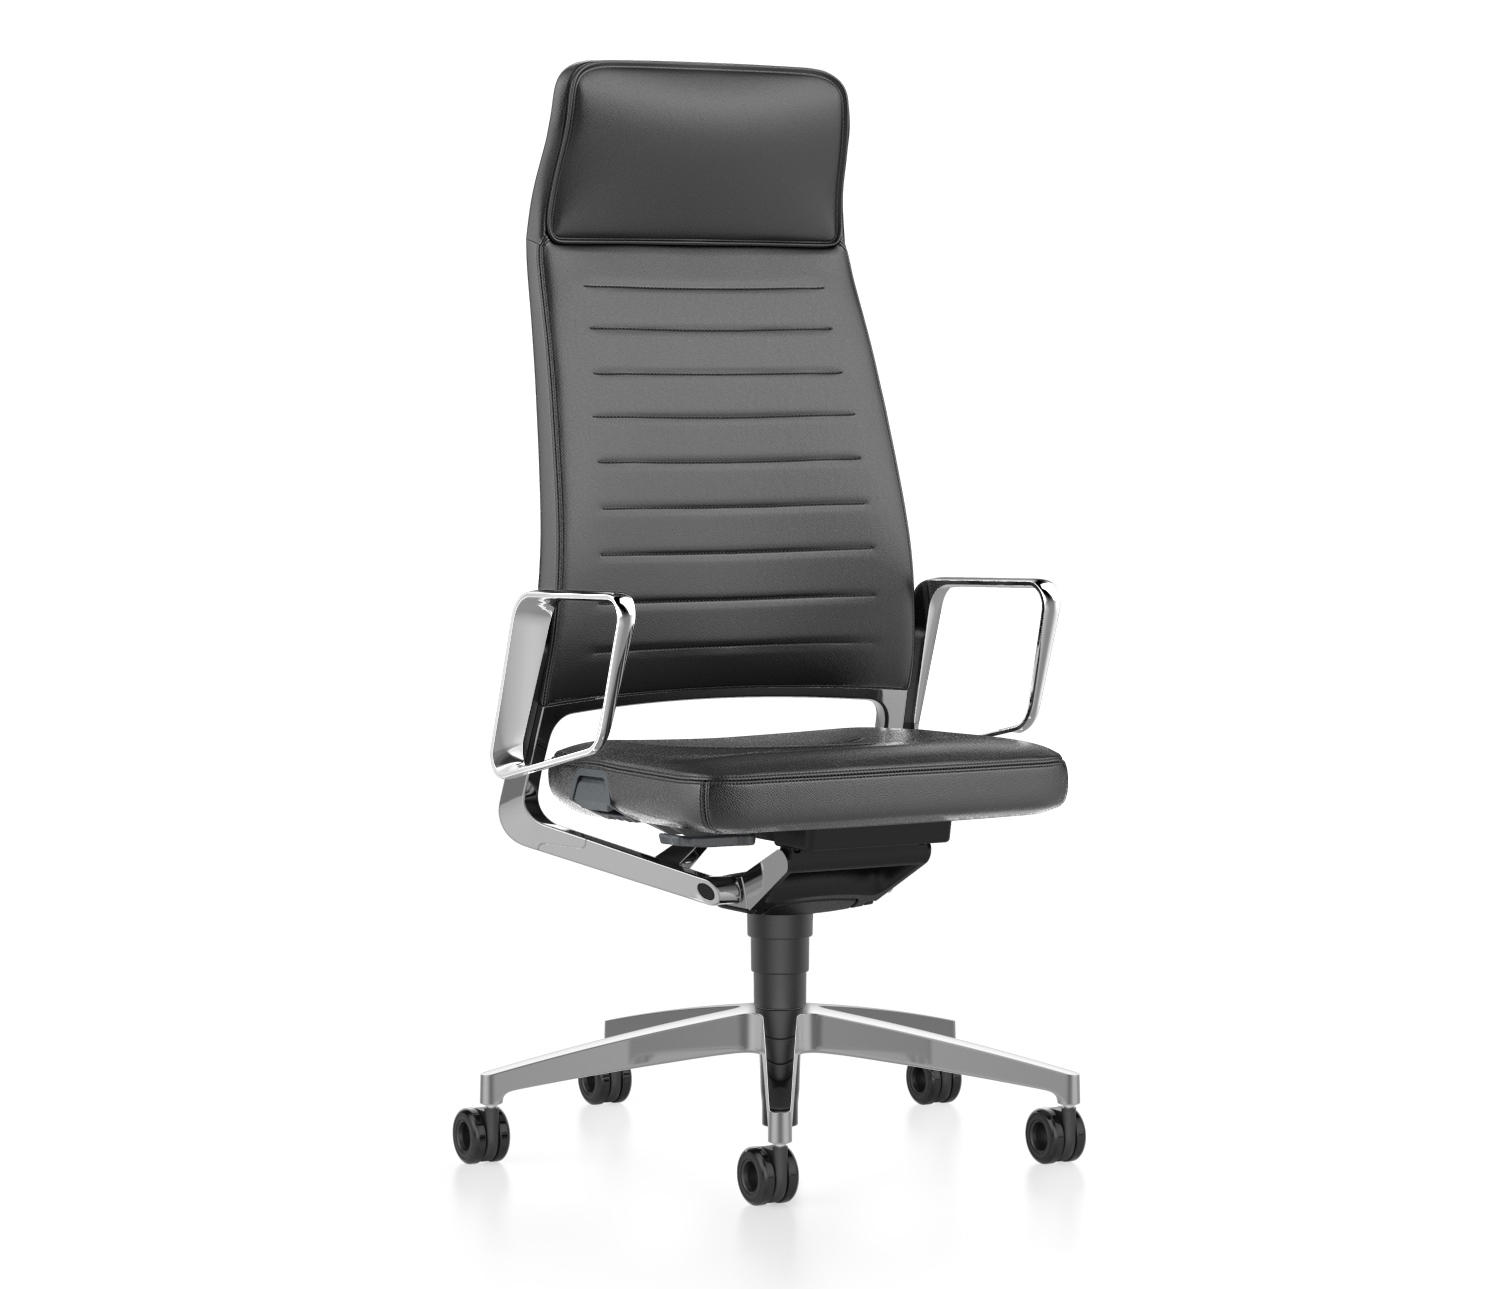 Vintageis5 32v2 management chairs from interstuhl for Buero moebel